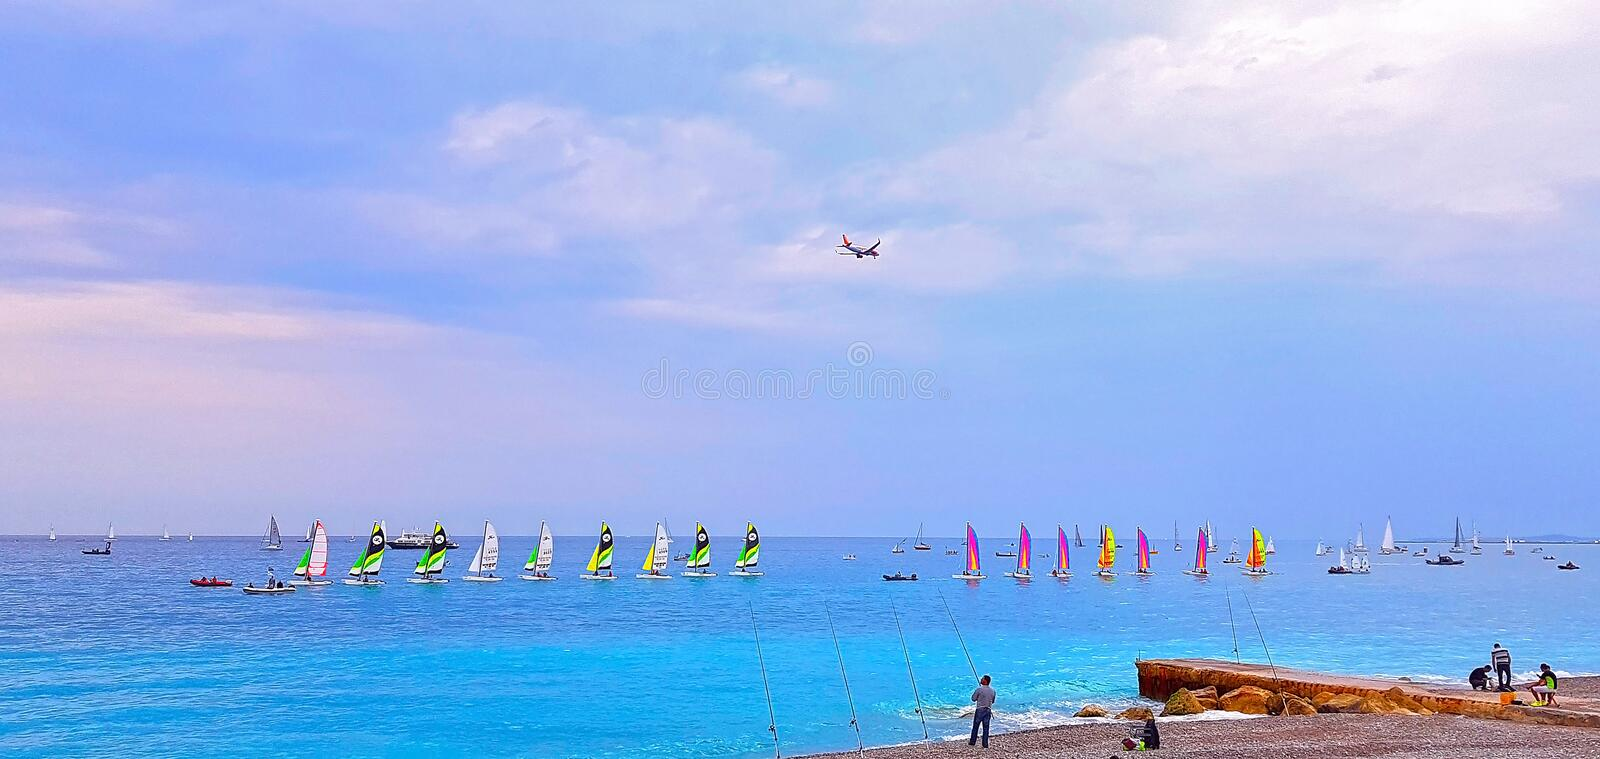 NICE, FRANCE - MAY 2018: Beach at sunset, colorful sailboats in the sea, airplane flying over the sea, Cote d`Azur, France. NICE, FRANCE - MAY 2018: Beach at royalty free stock images